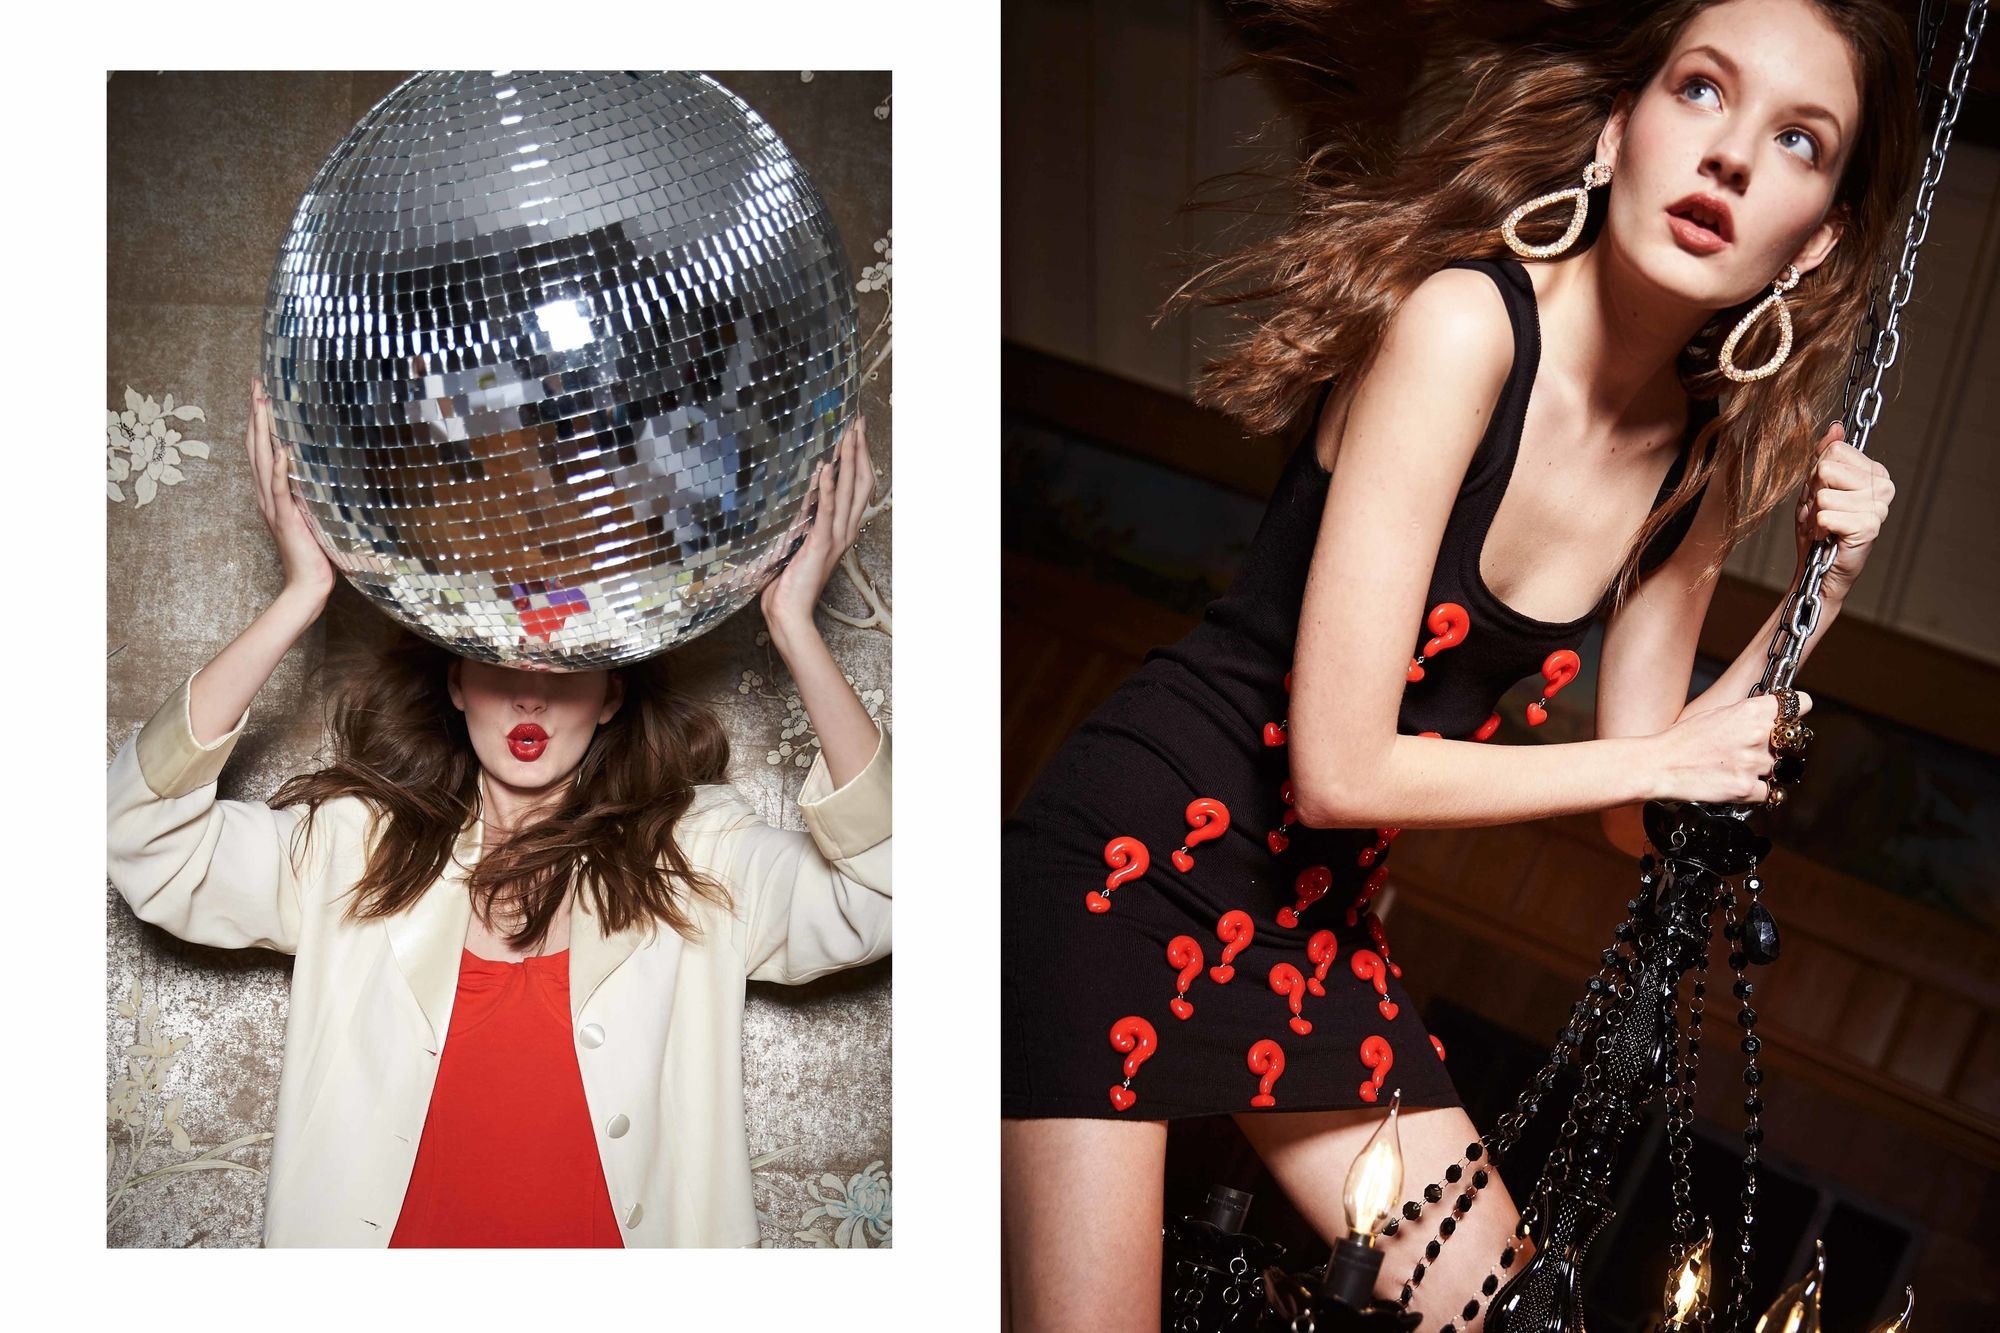 ALYSSA PIZER MANAGEMENT: Party People by Cindy James